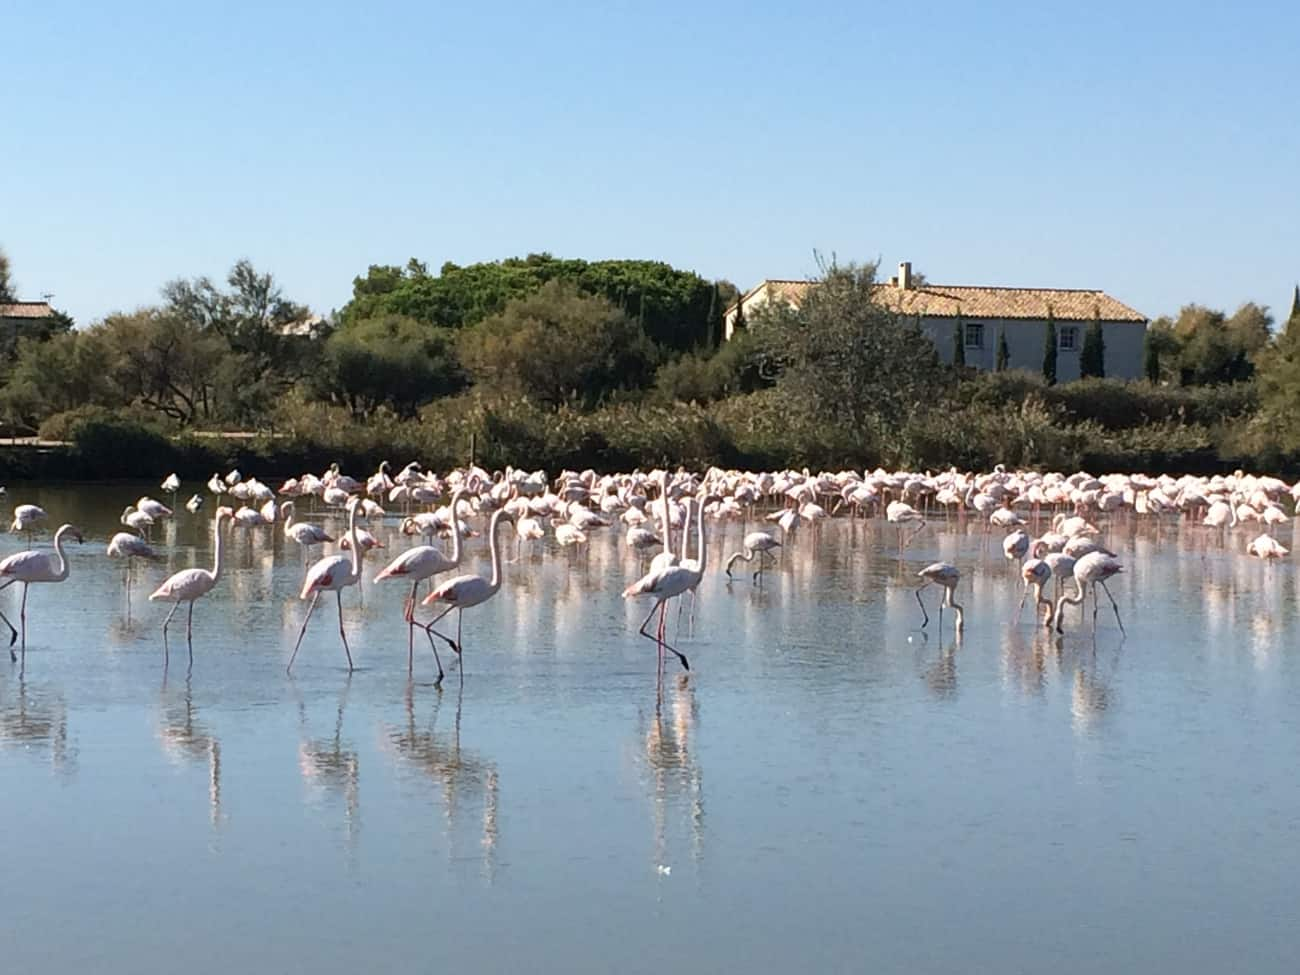 Camargue - flamingoes strutting